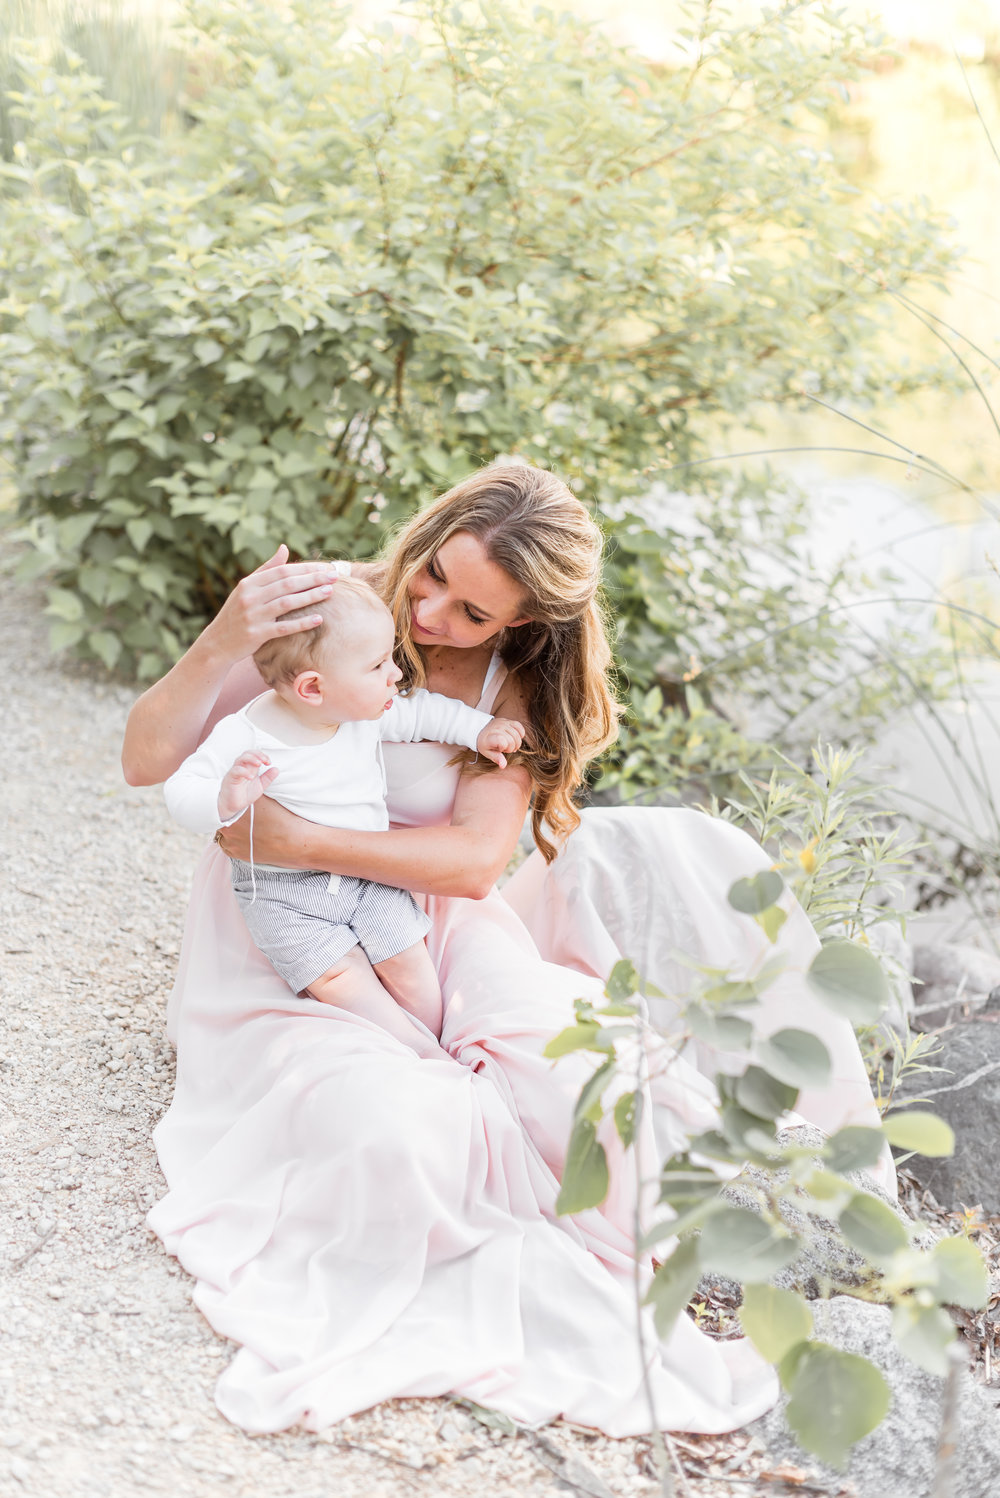 See more of Marcela + Frederick's mommy & me sess  ion on the   blog!